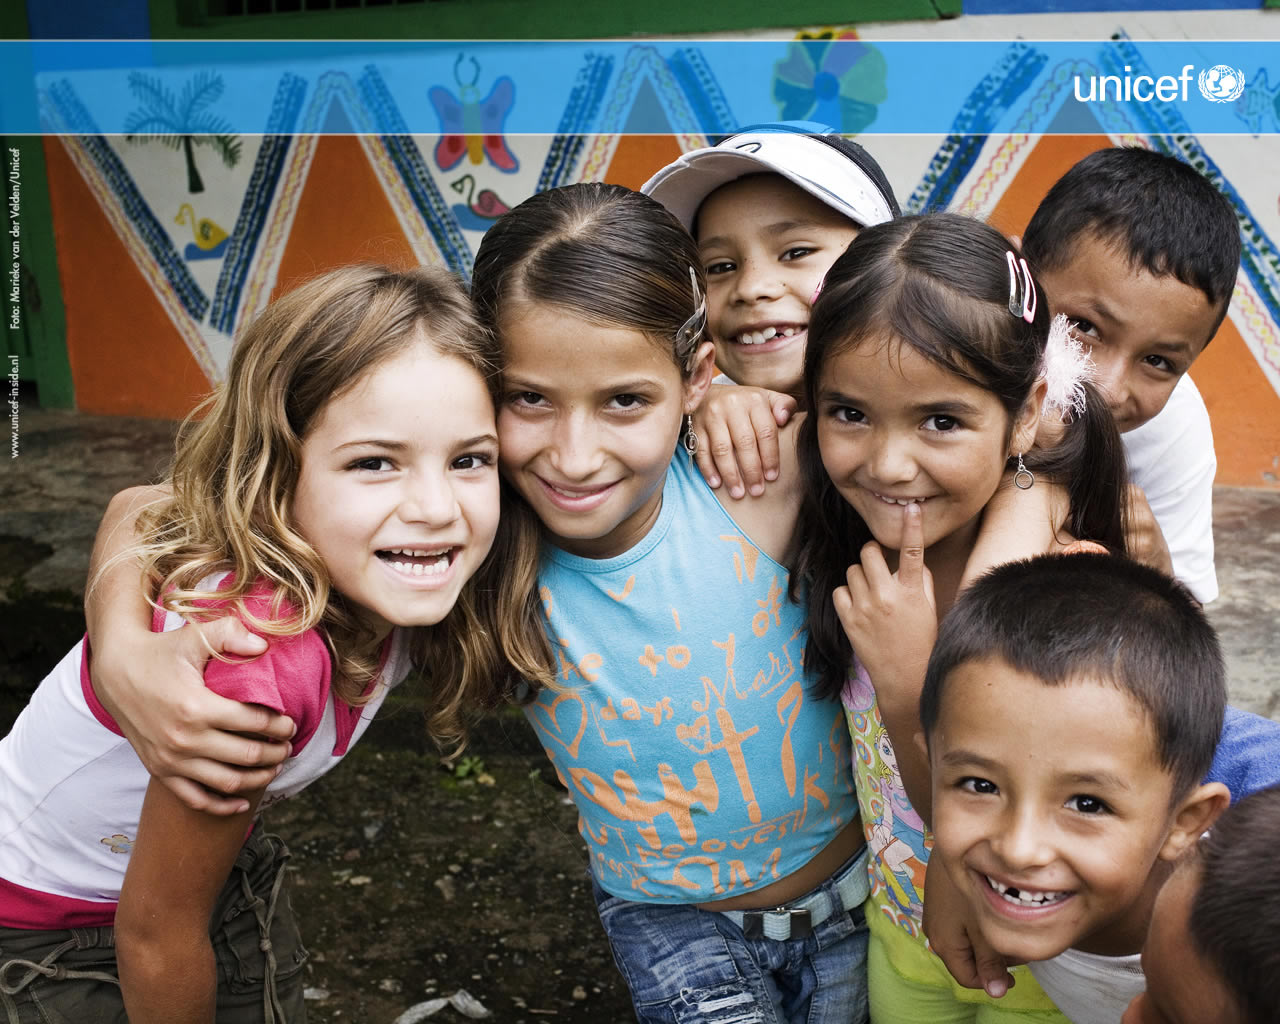 UNICEF: https://perspectivapositiva.files.wordpress.com/2013/06/unicef8-1280.jpg